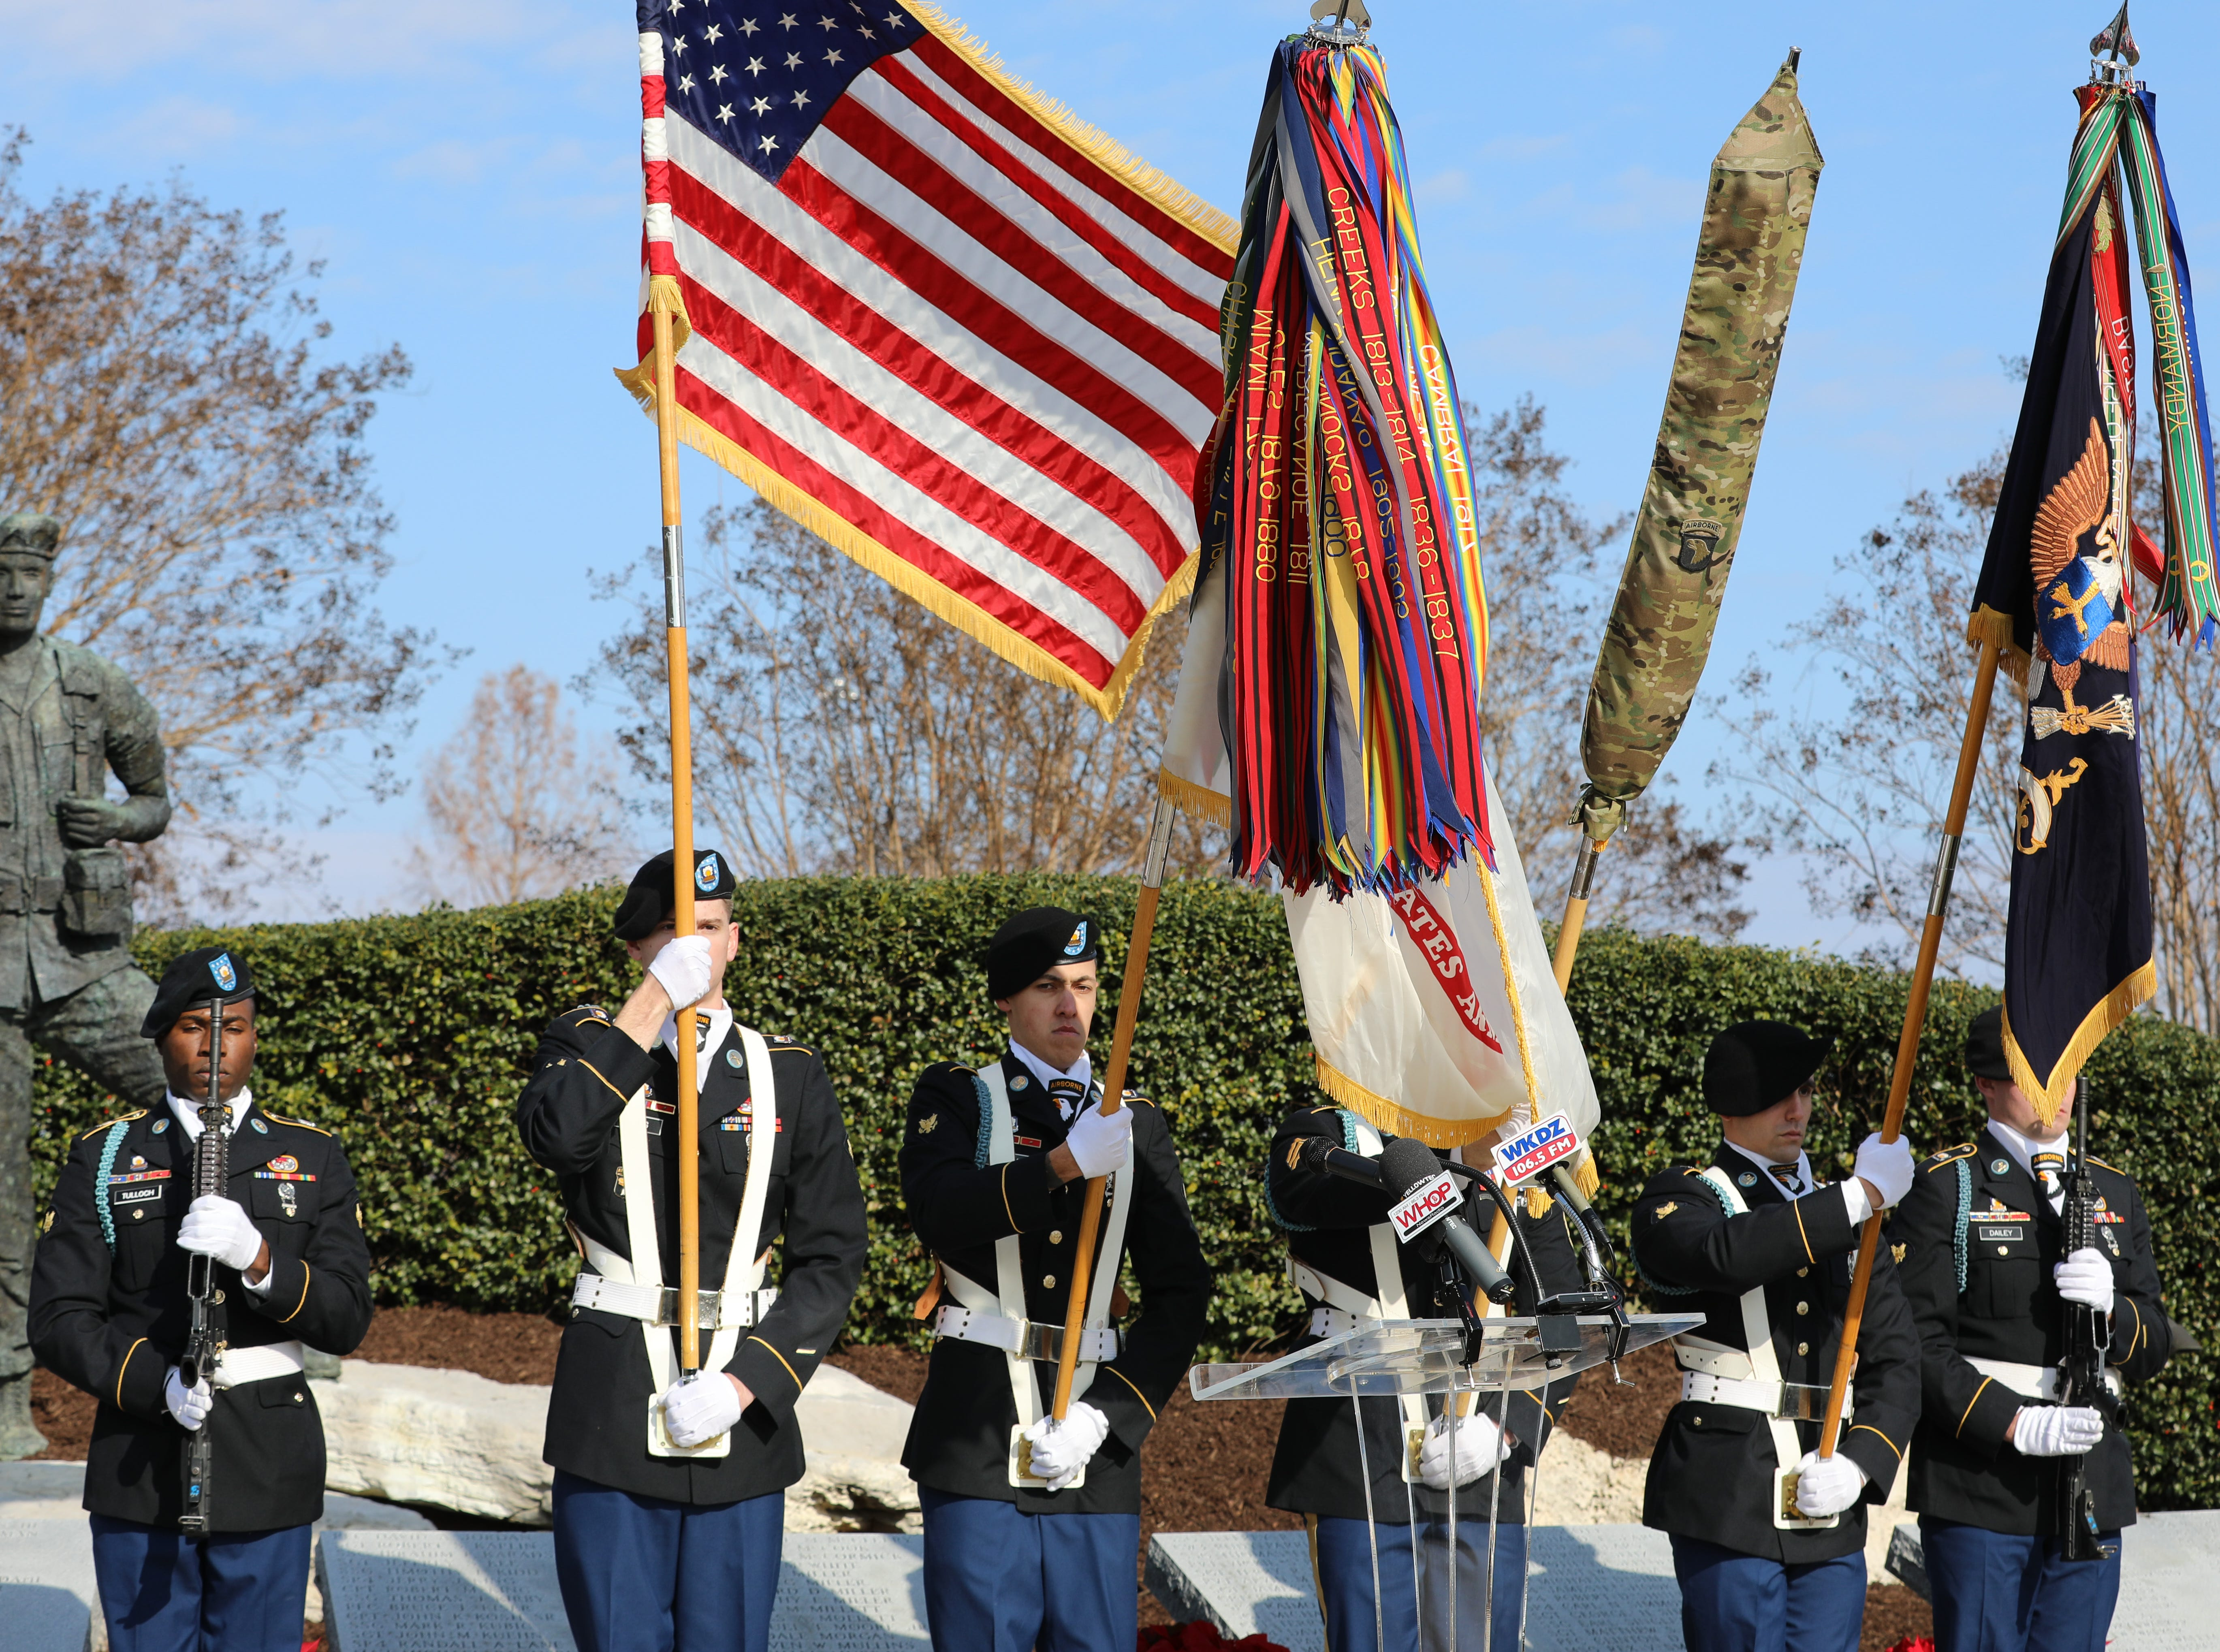 Honor Guard Soldiers, 2nd Brigade Combat Team, conduct ceremony presentations of the flags in Honor of the Gander Memorial in Hopkinsville, KY Dec. 12, 2018.